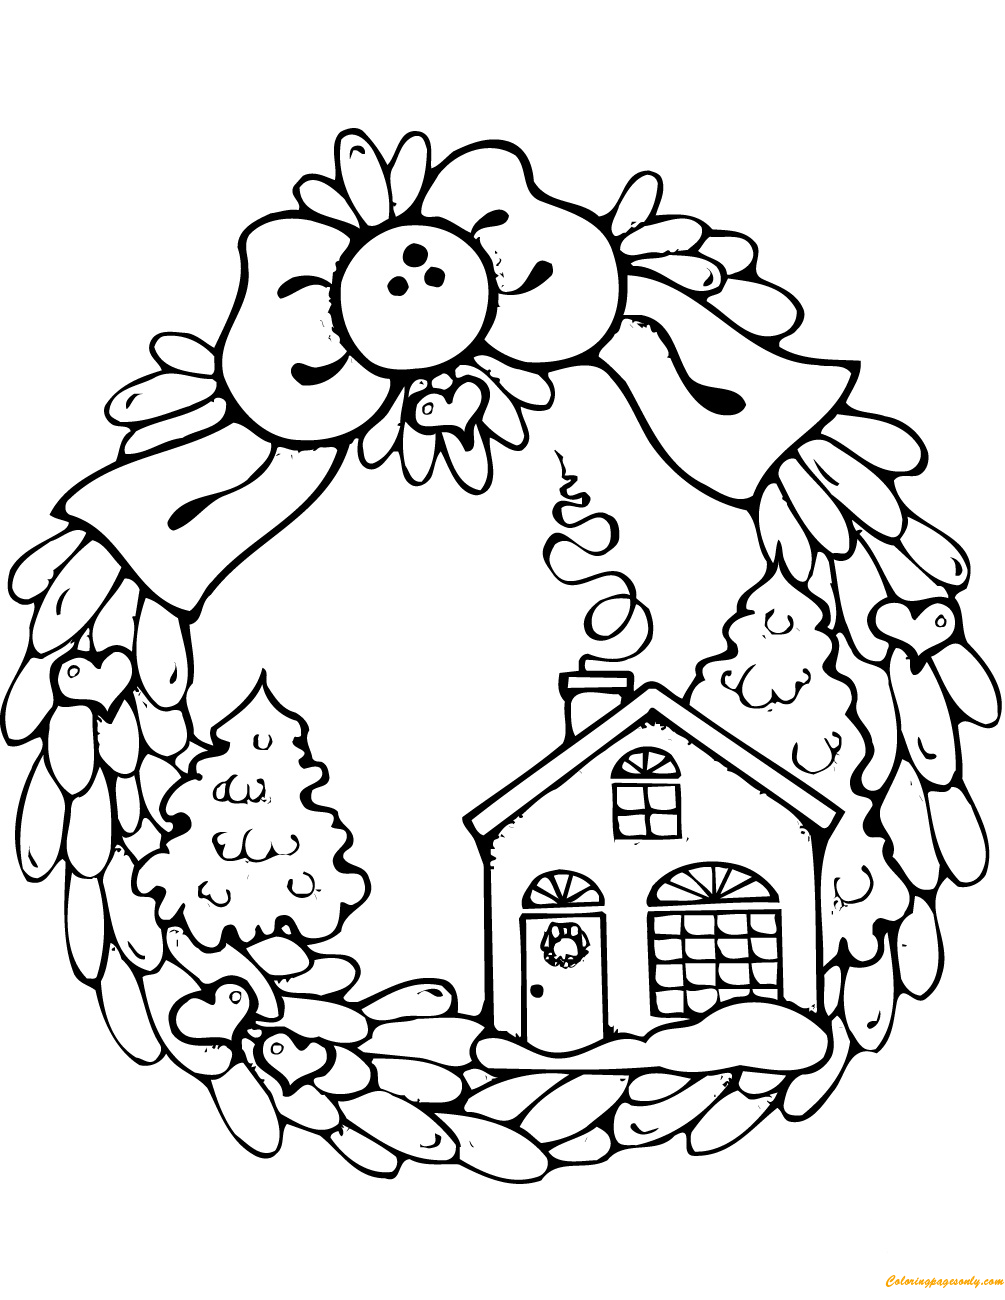 Gingerbread House Christmas Wreath Coloring Page Free Coloring Pages Online